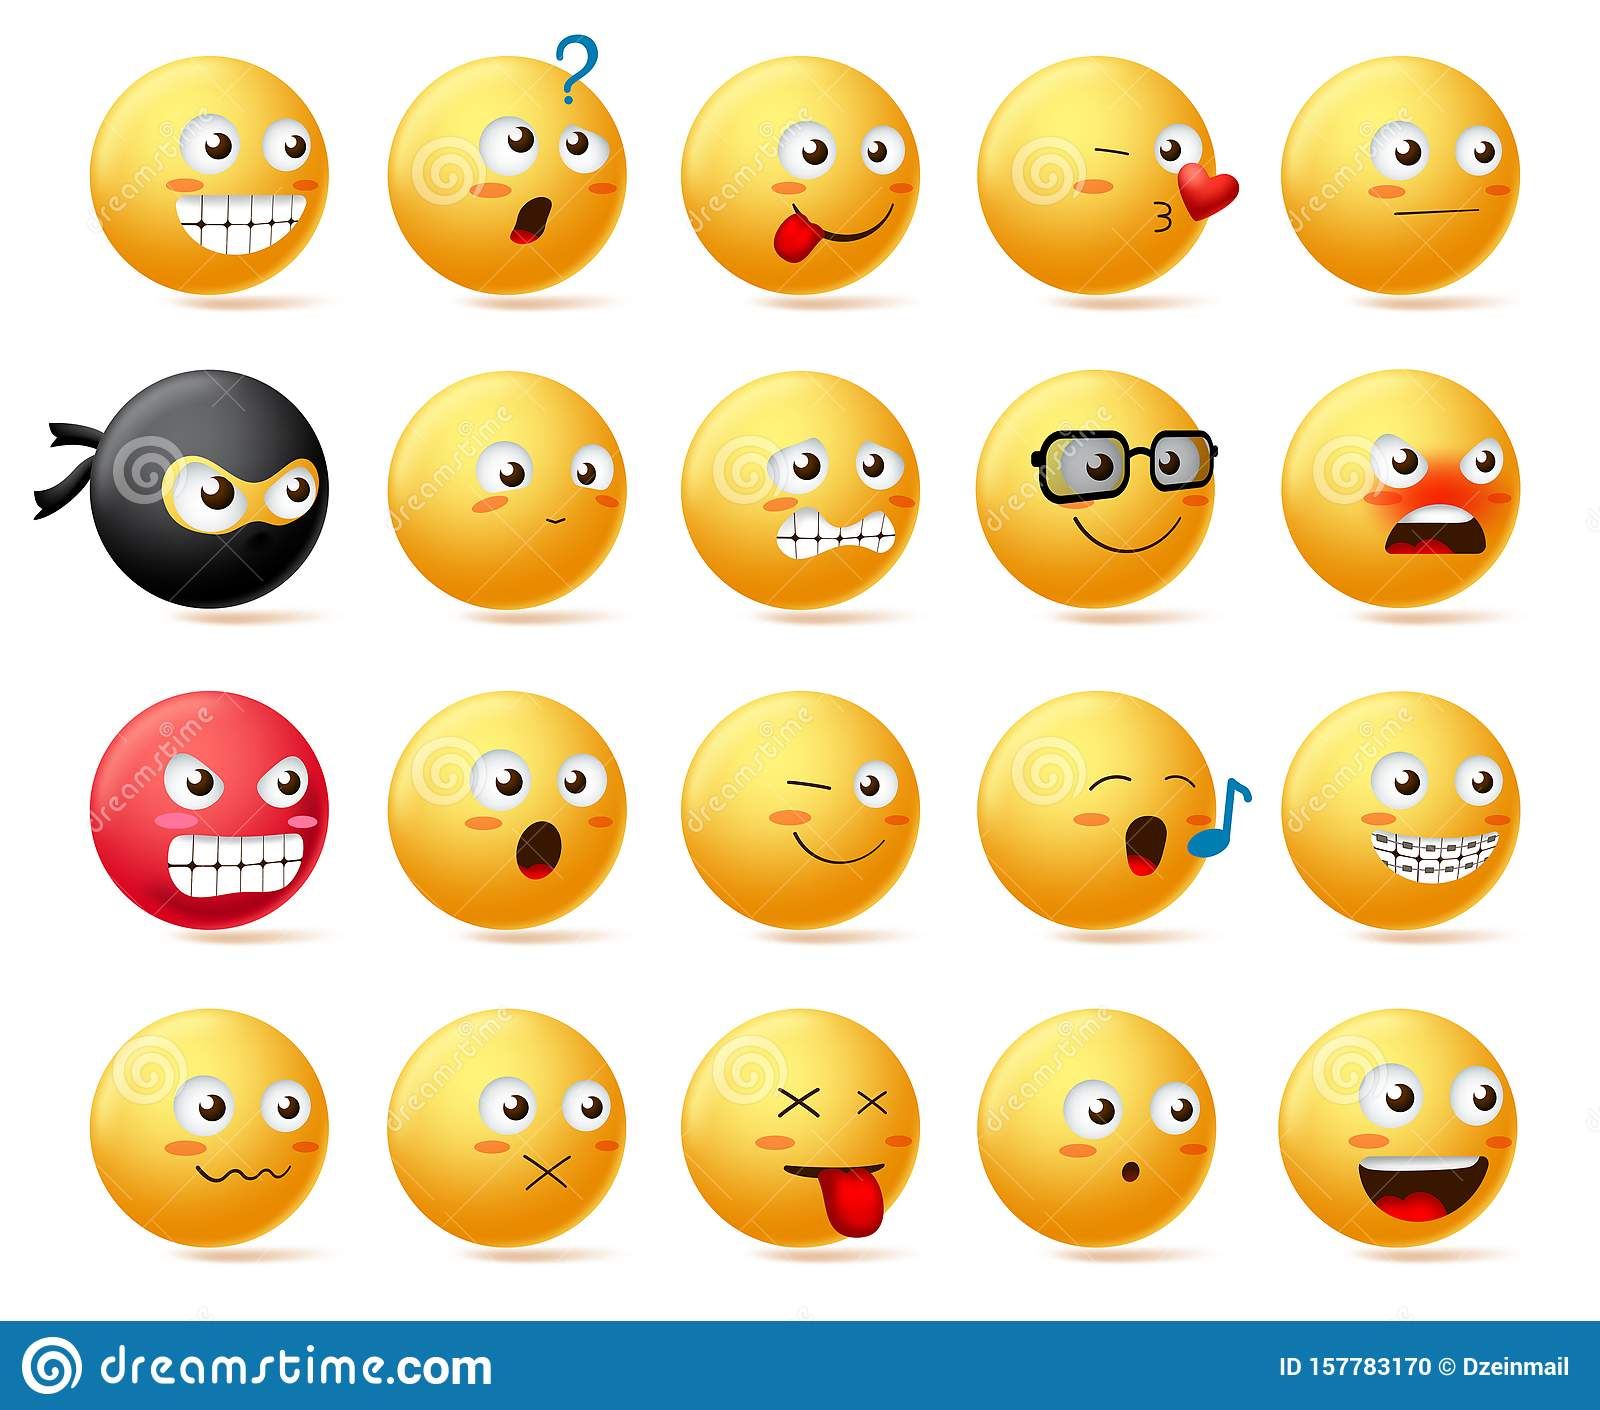 smileys emoji faces vector character set. smiley emoticon with yellow face  in side view. stock vector - illustration of emotion, background: 157783170  dreamstime.com